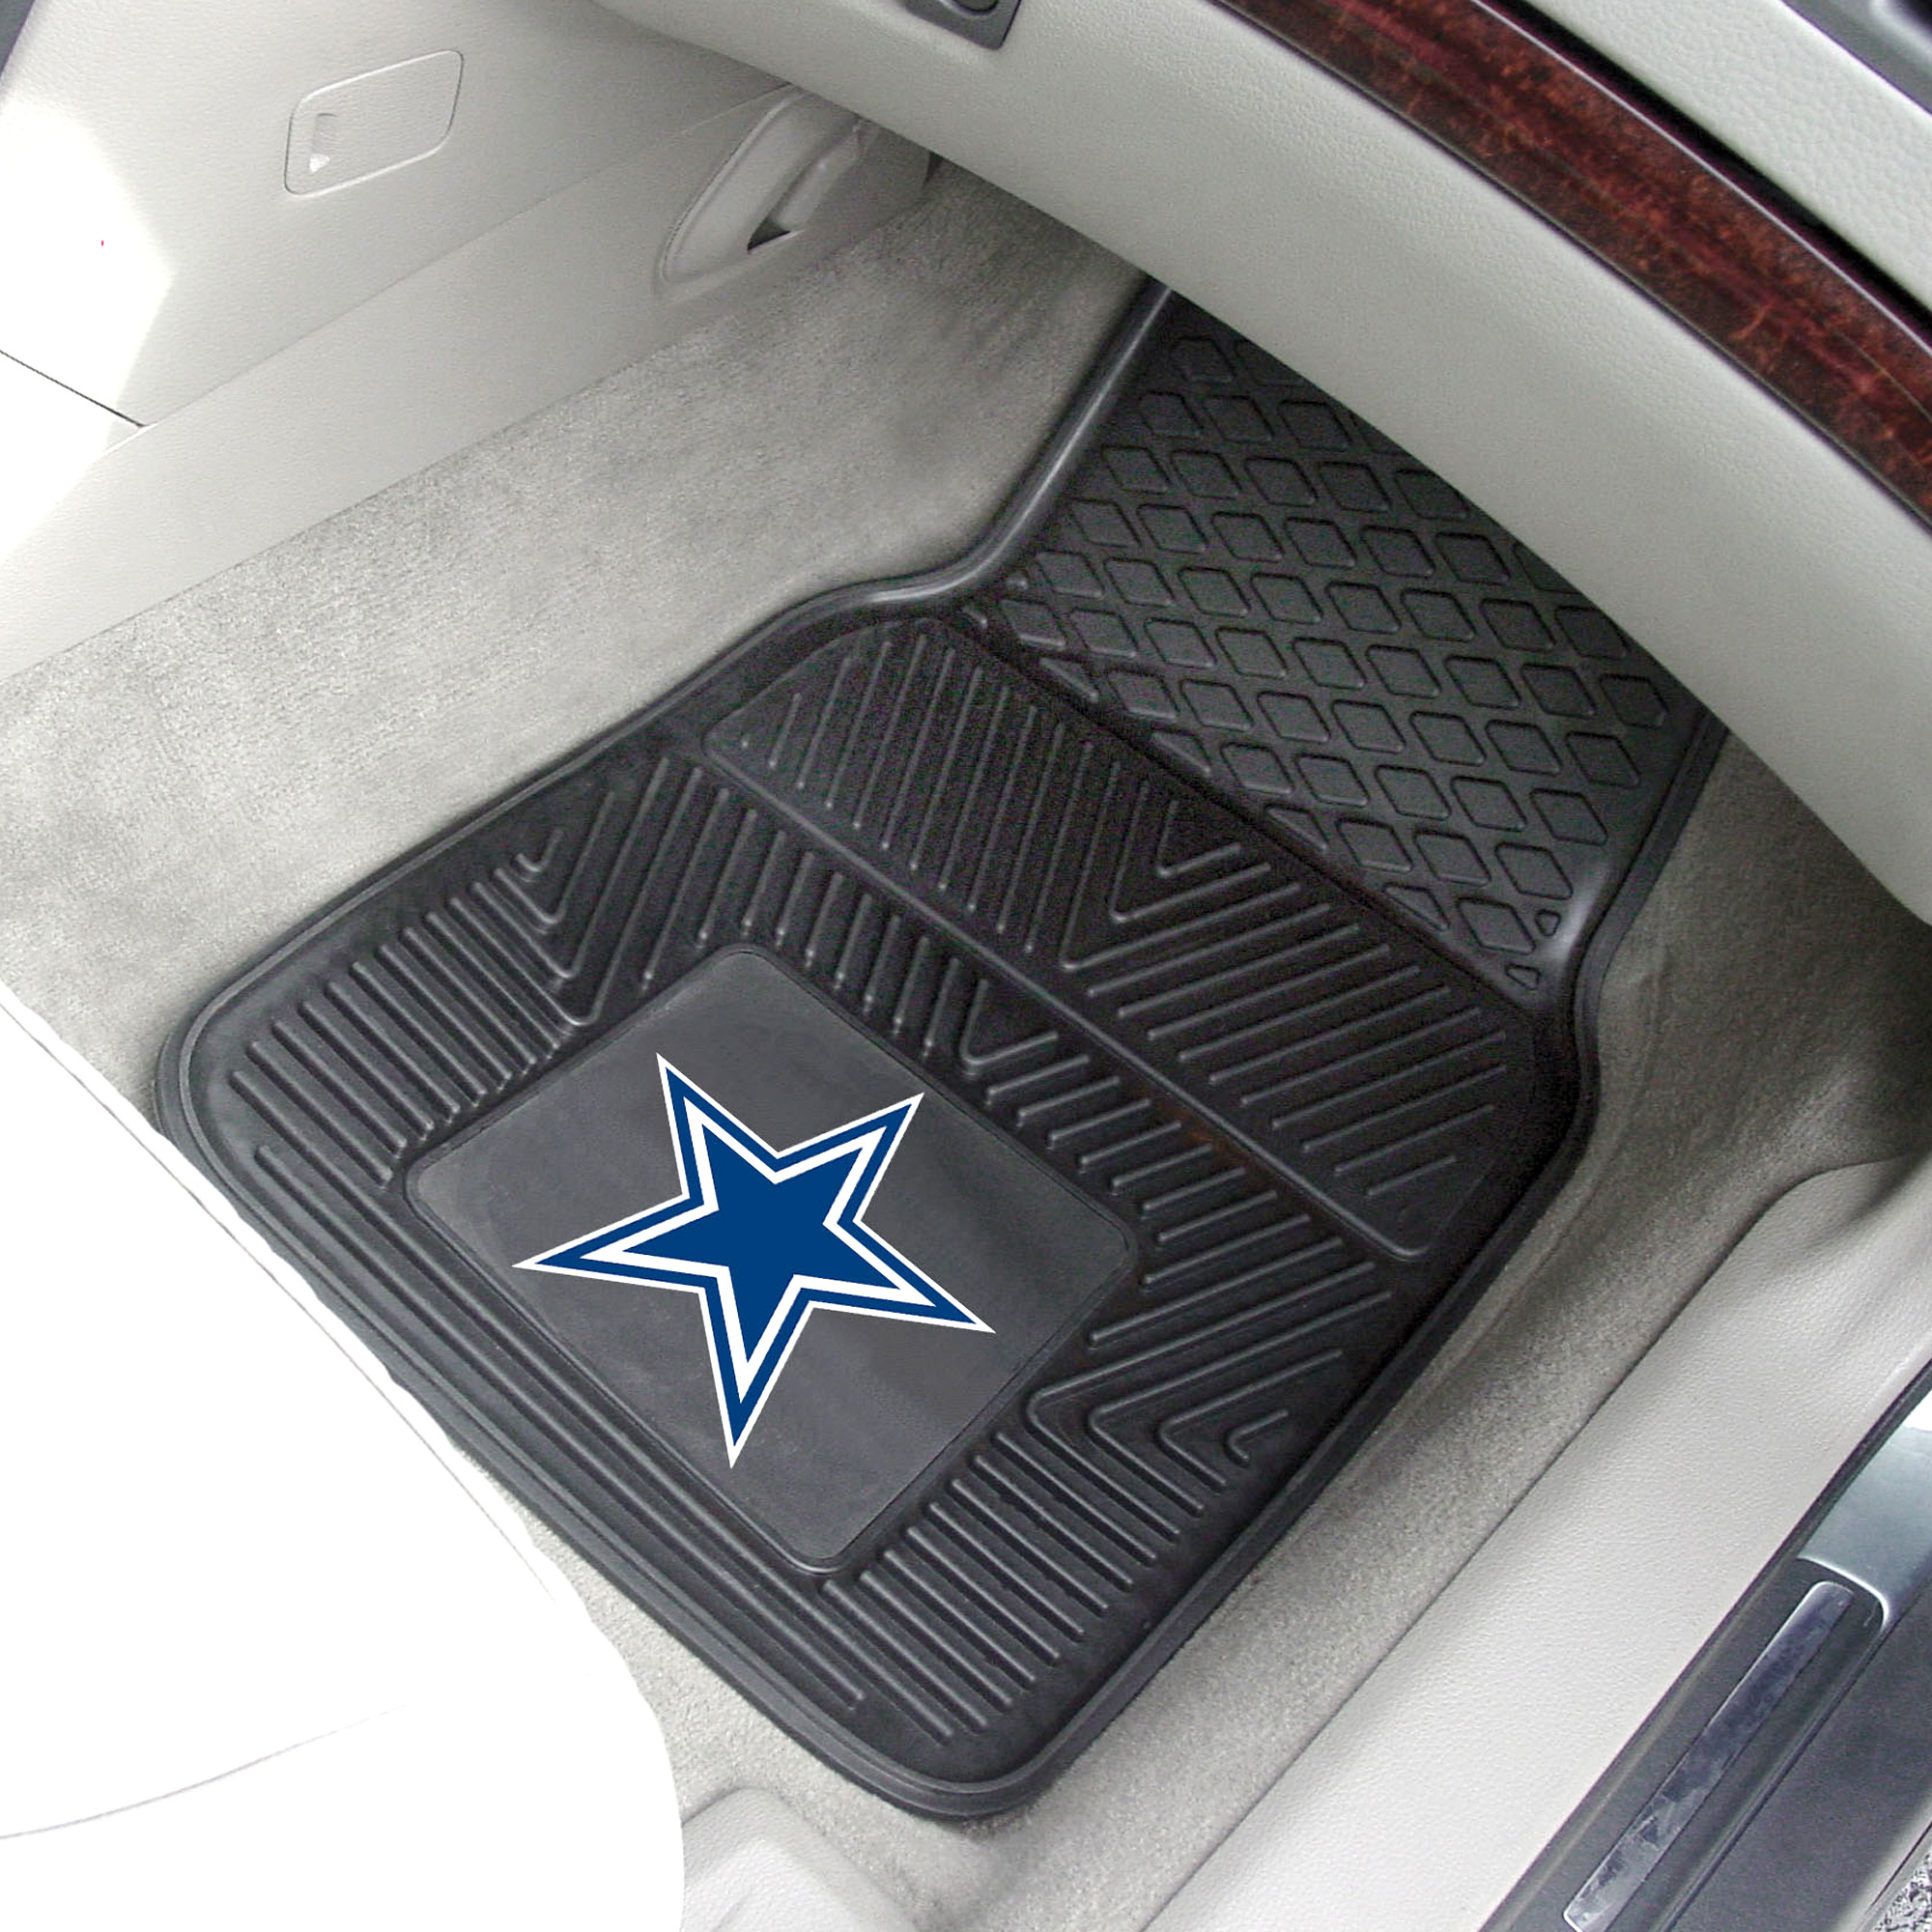 Fanmats Sports Licensing Solutions Llc Nfl Dallas